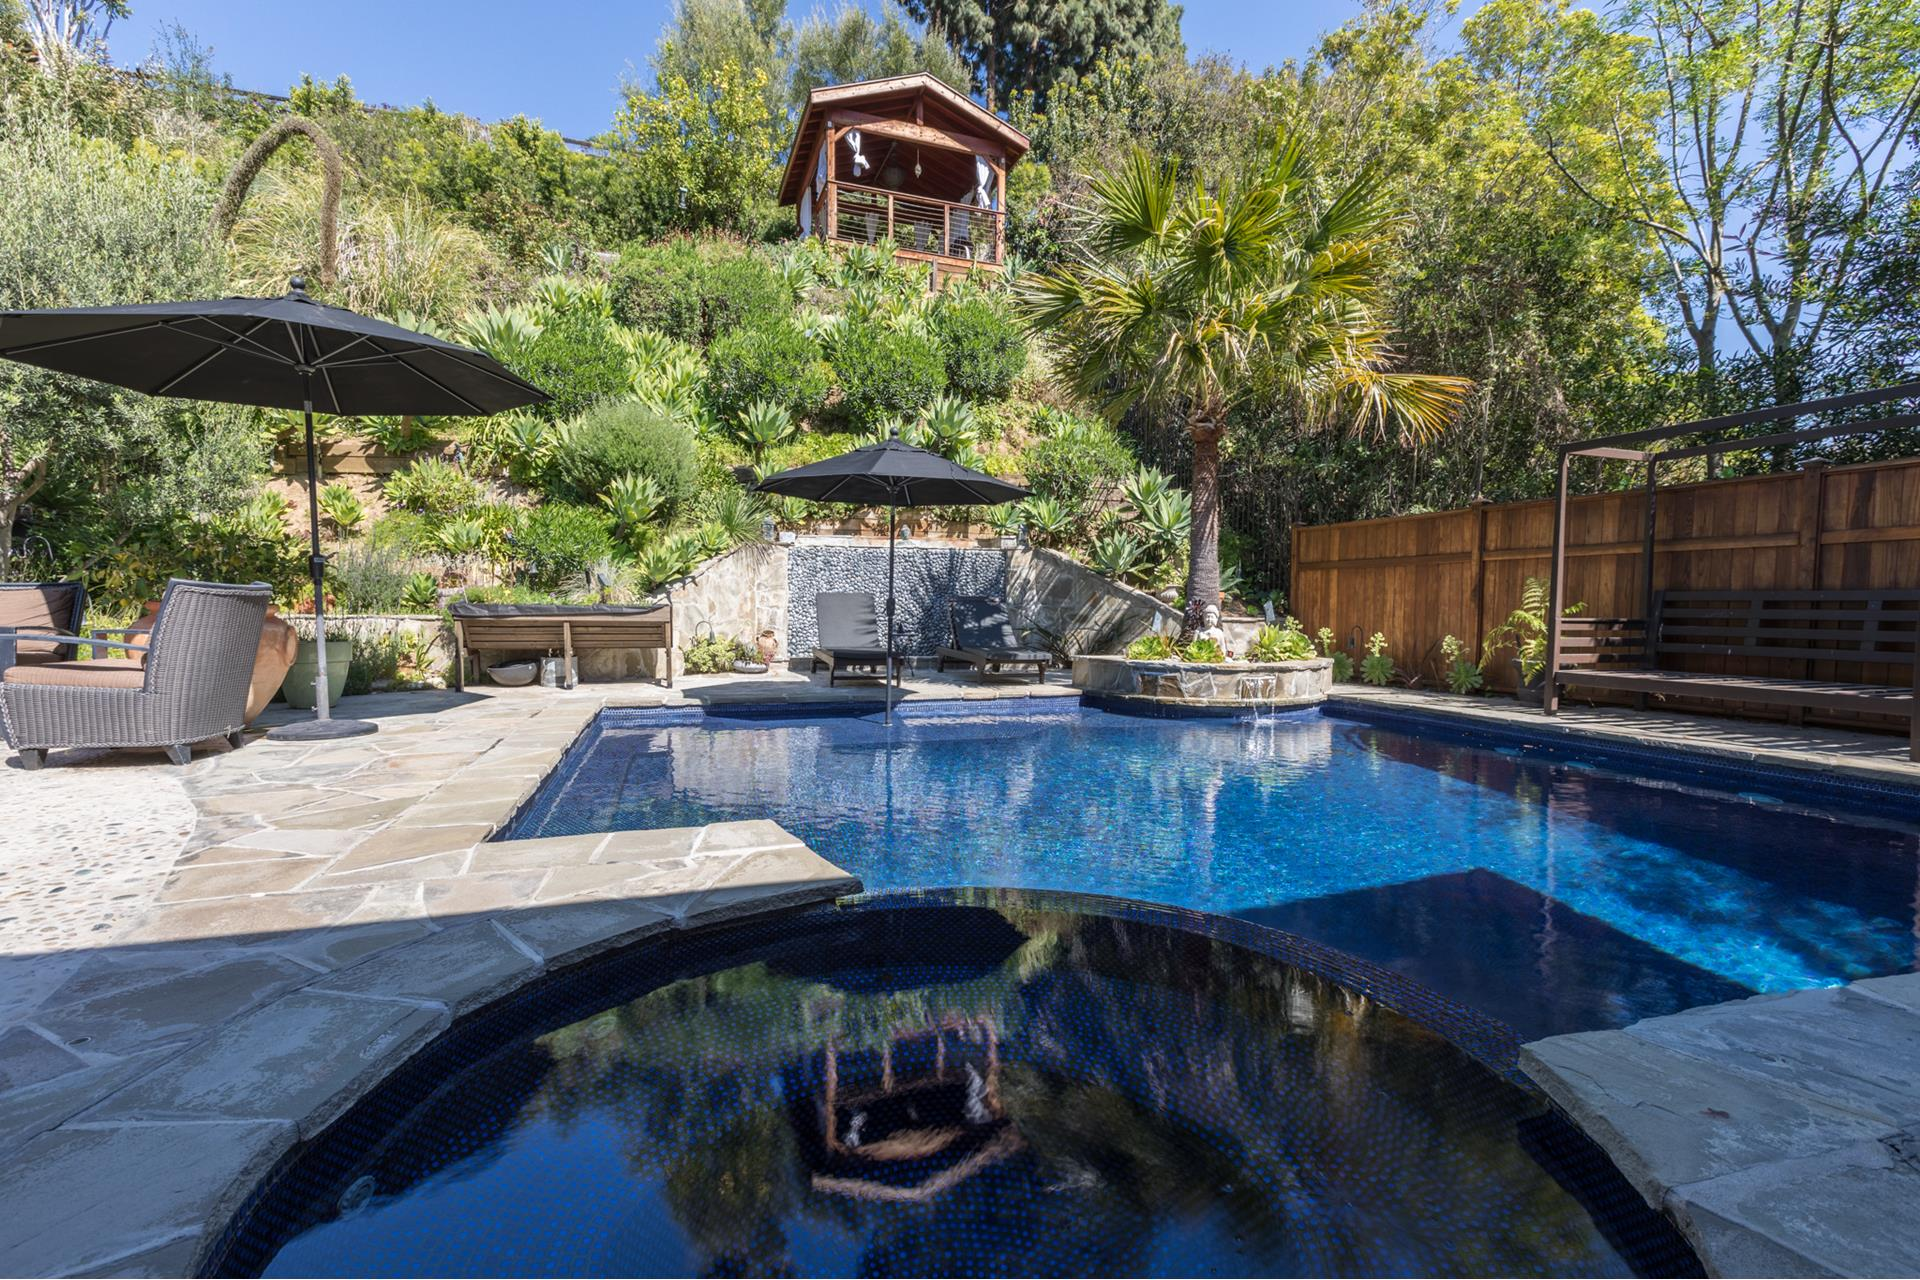 2716 LAUREL PASS Avenue - Sunset Strip / Hollywood Hills West, California